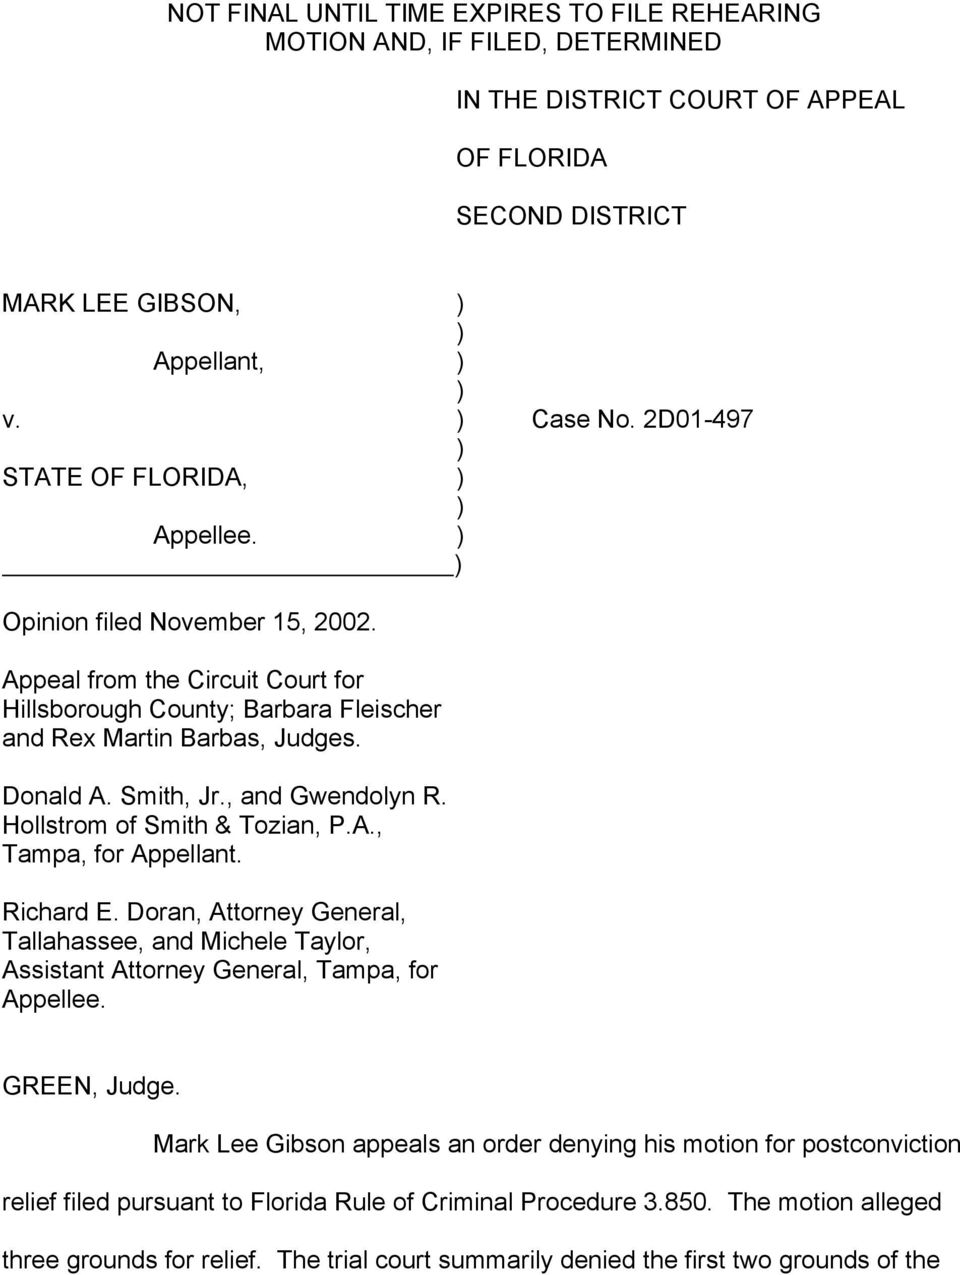 , and Gwendolyn R. Hollstrom of Smith & Tozian, P.A., Tampa, for Appellant. Richard E. Doran, Attorney General, Tallahassee, and Michele Taylor, Assistant Attorney General, Tampa, for Appellee.